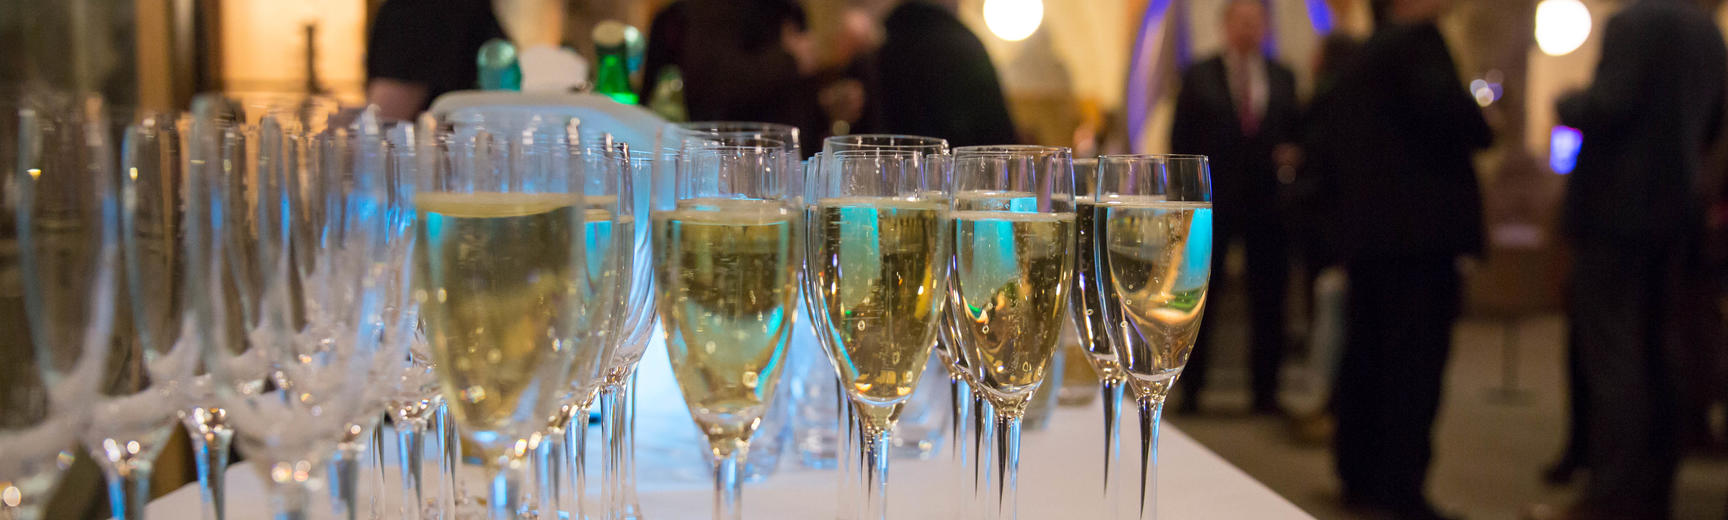 events  champagne glasses